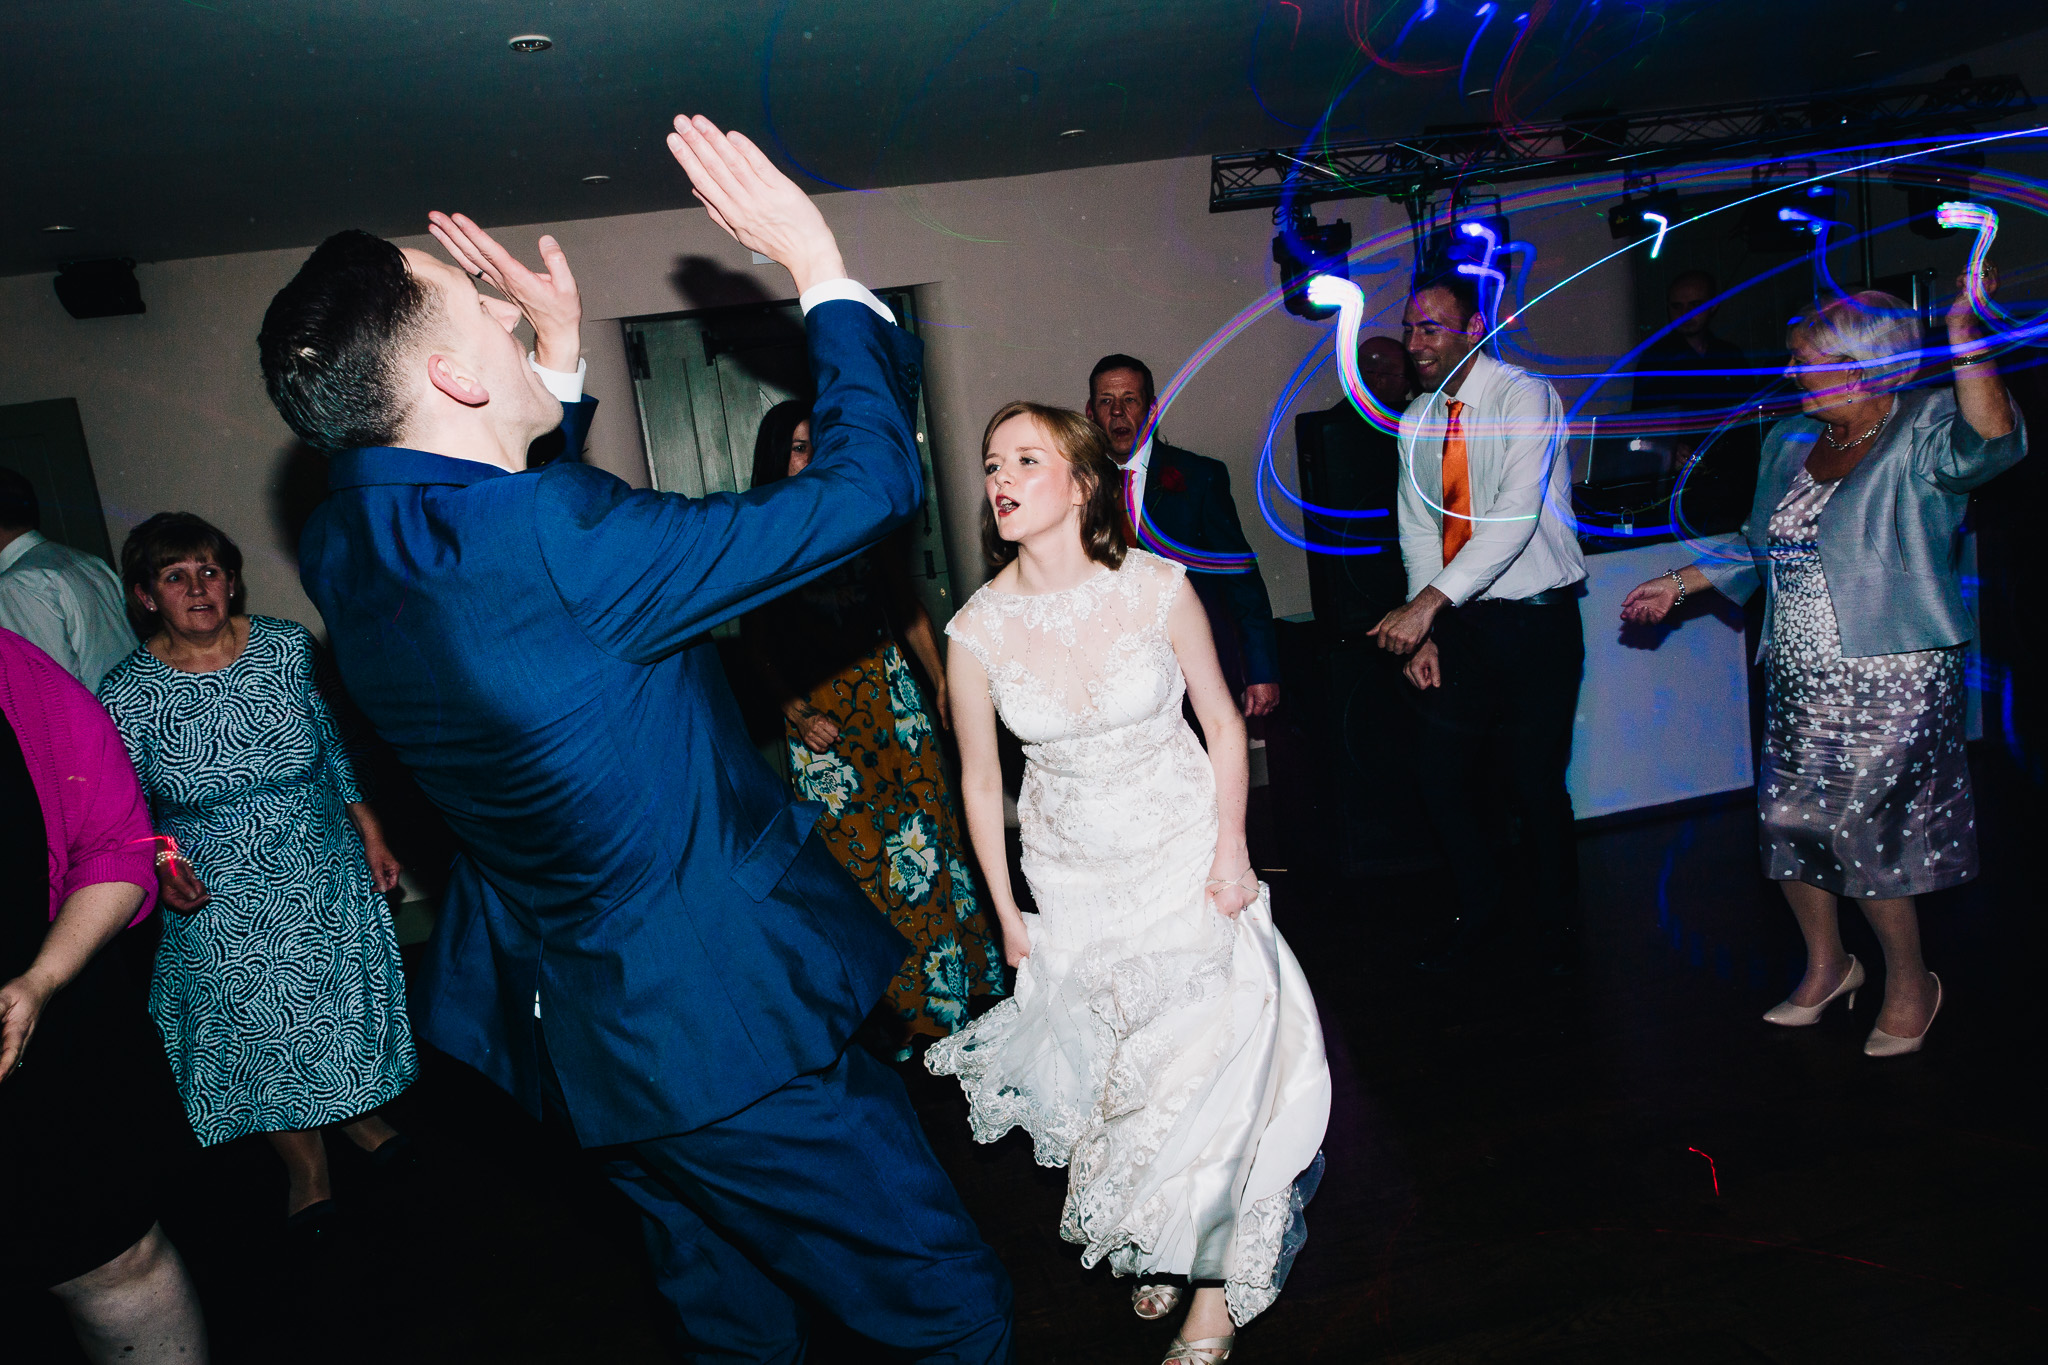 GROOM DANCING WITH BRIDE AT WEDDING VENUE IN STAFFORDSHIRE